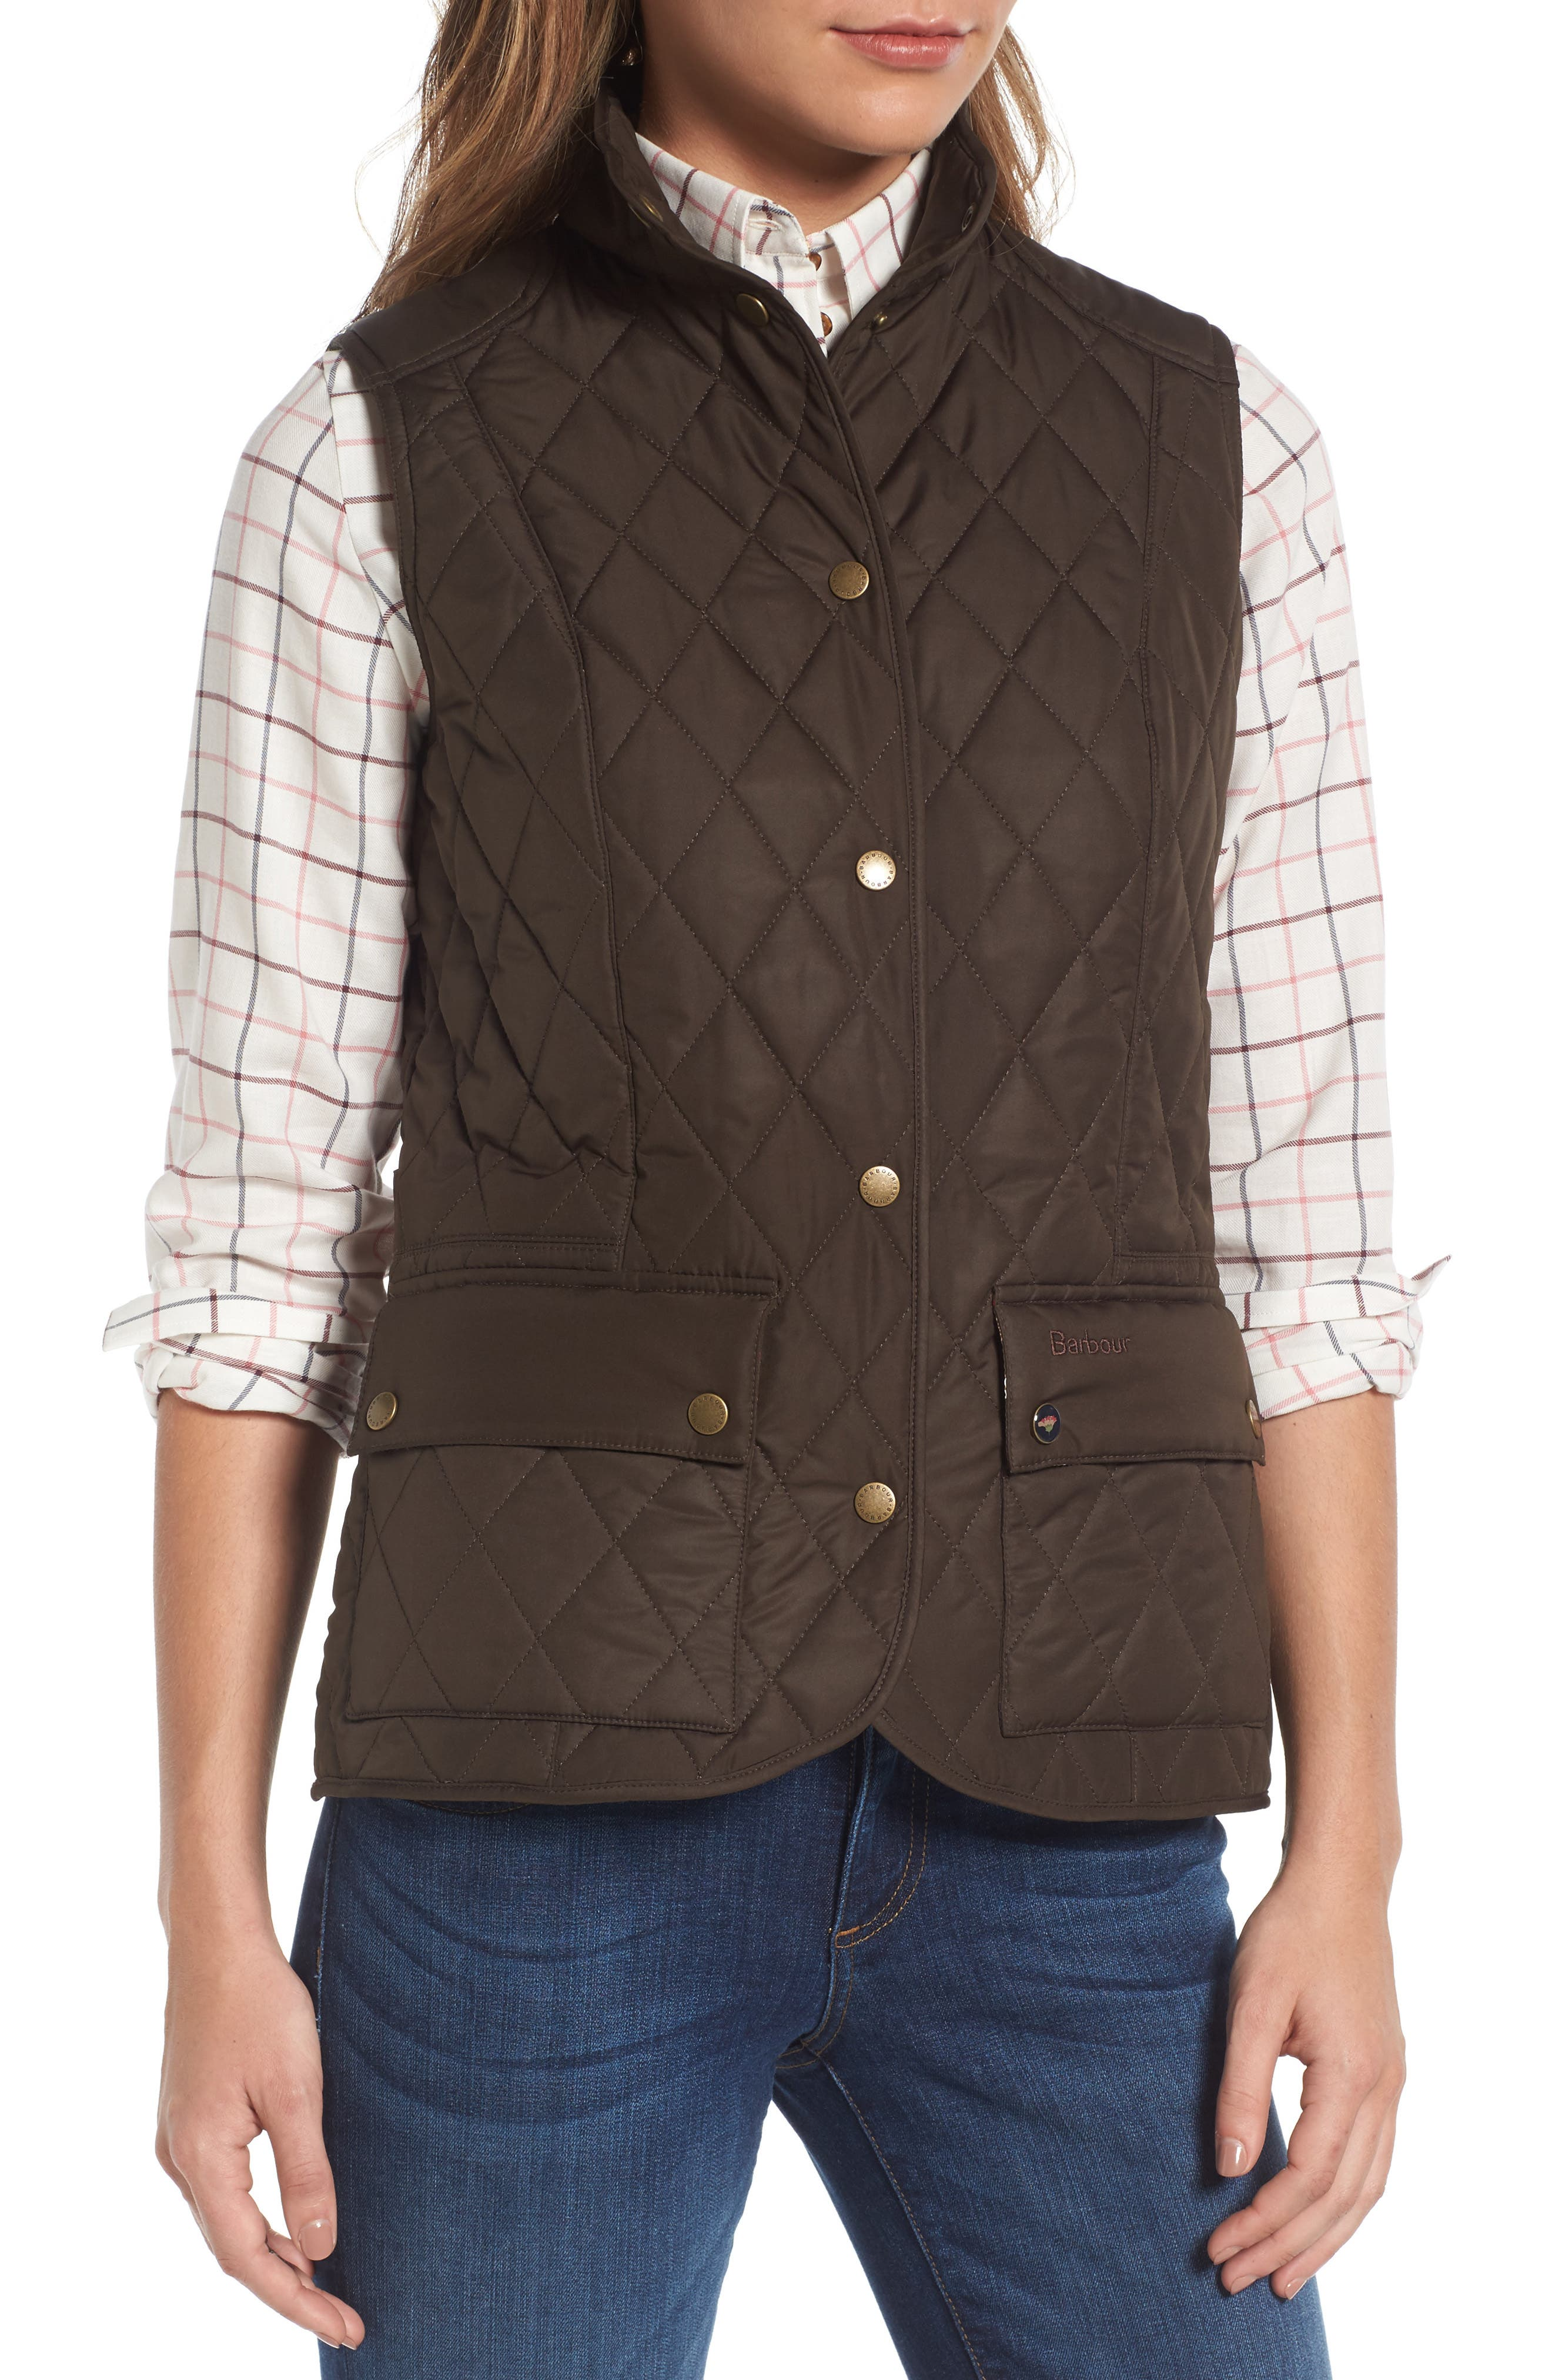 BARBOUR, Saddleworth Quilted Vest, Alternate thumbnail 4, color, 340